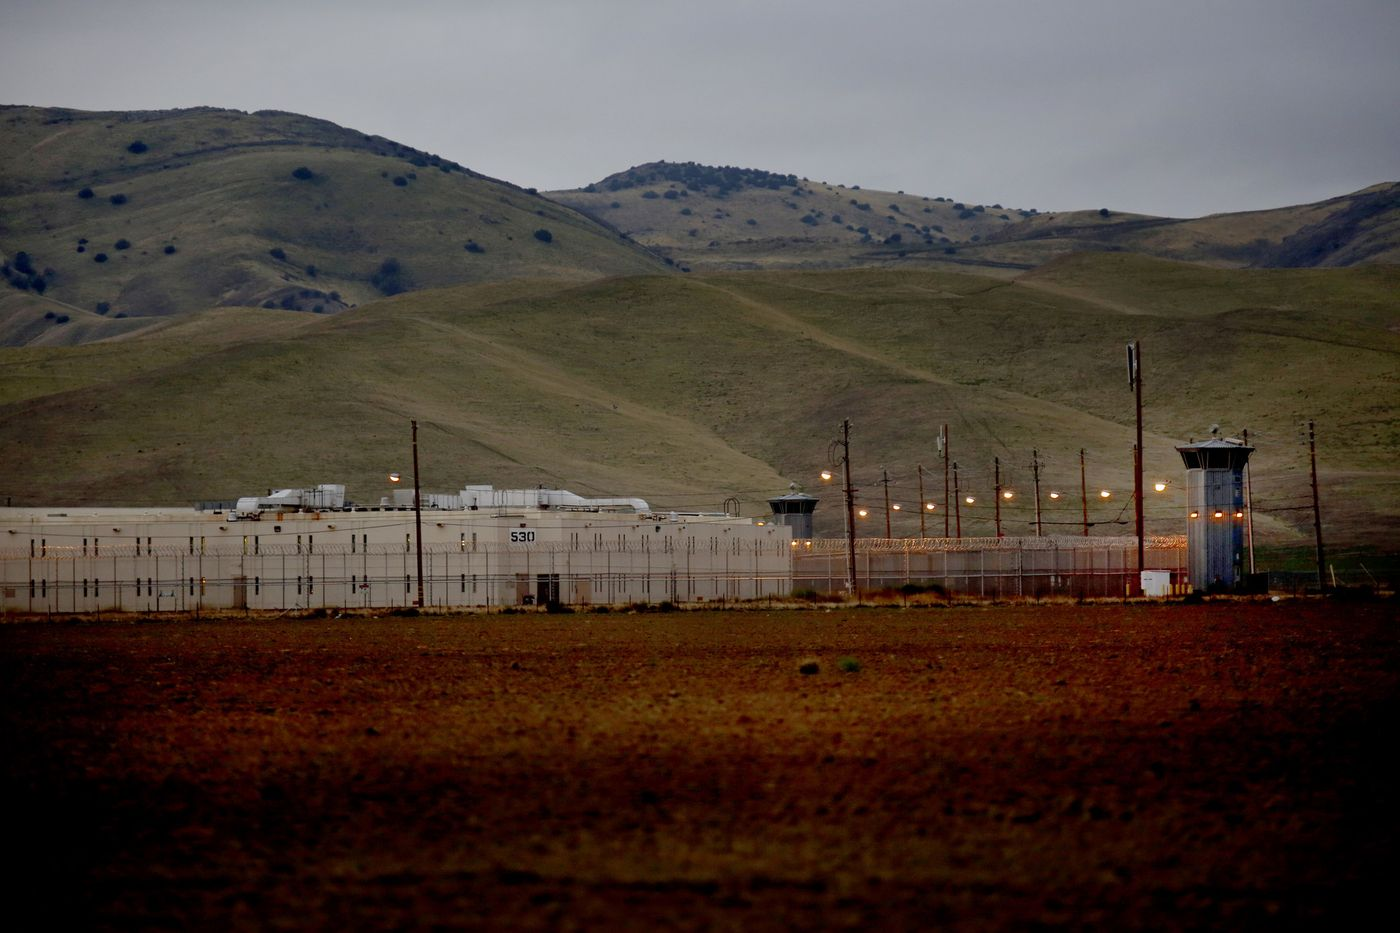 Avenal State Prison in Kings County is seen in an undated photo. (Credit: Francine Orr / Los Angeles Times)